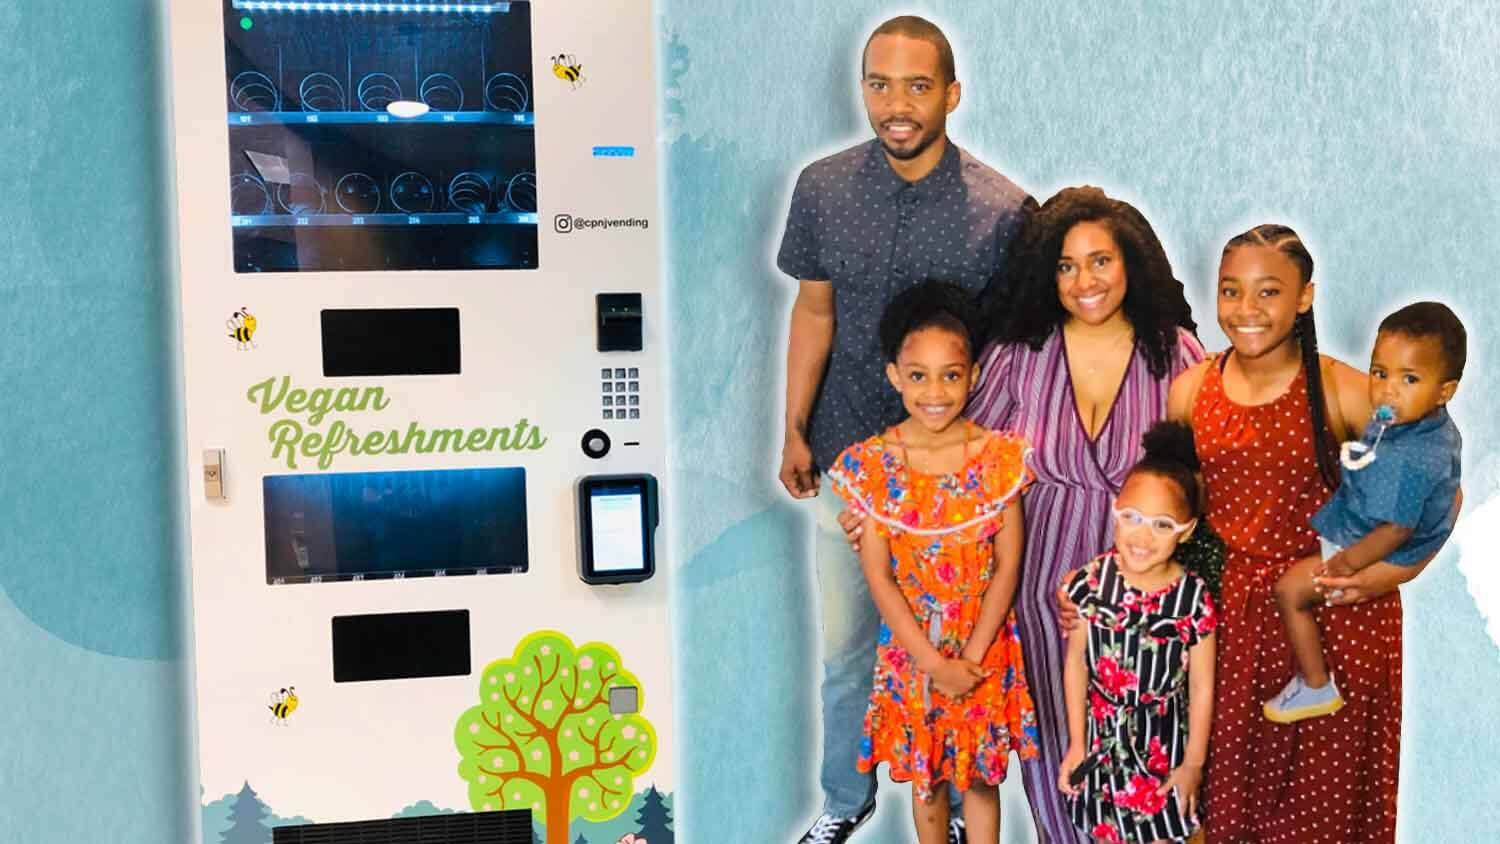 Family-Run Vegan Vending Machine Company to Take Over US Hospitals